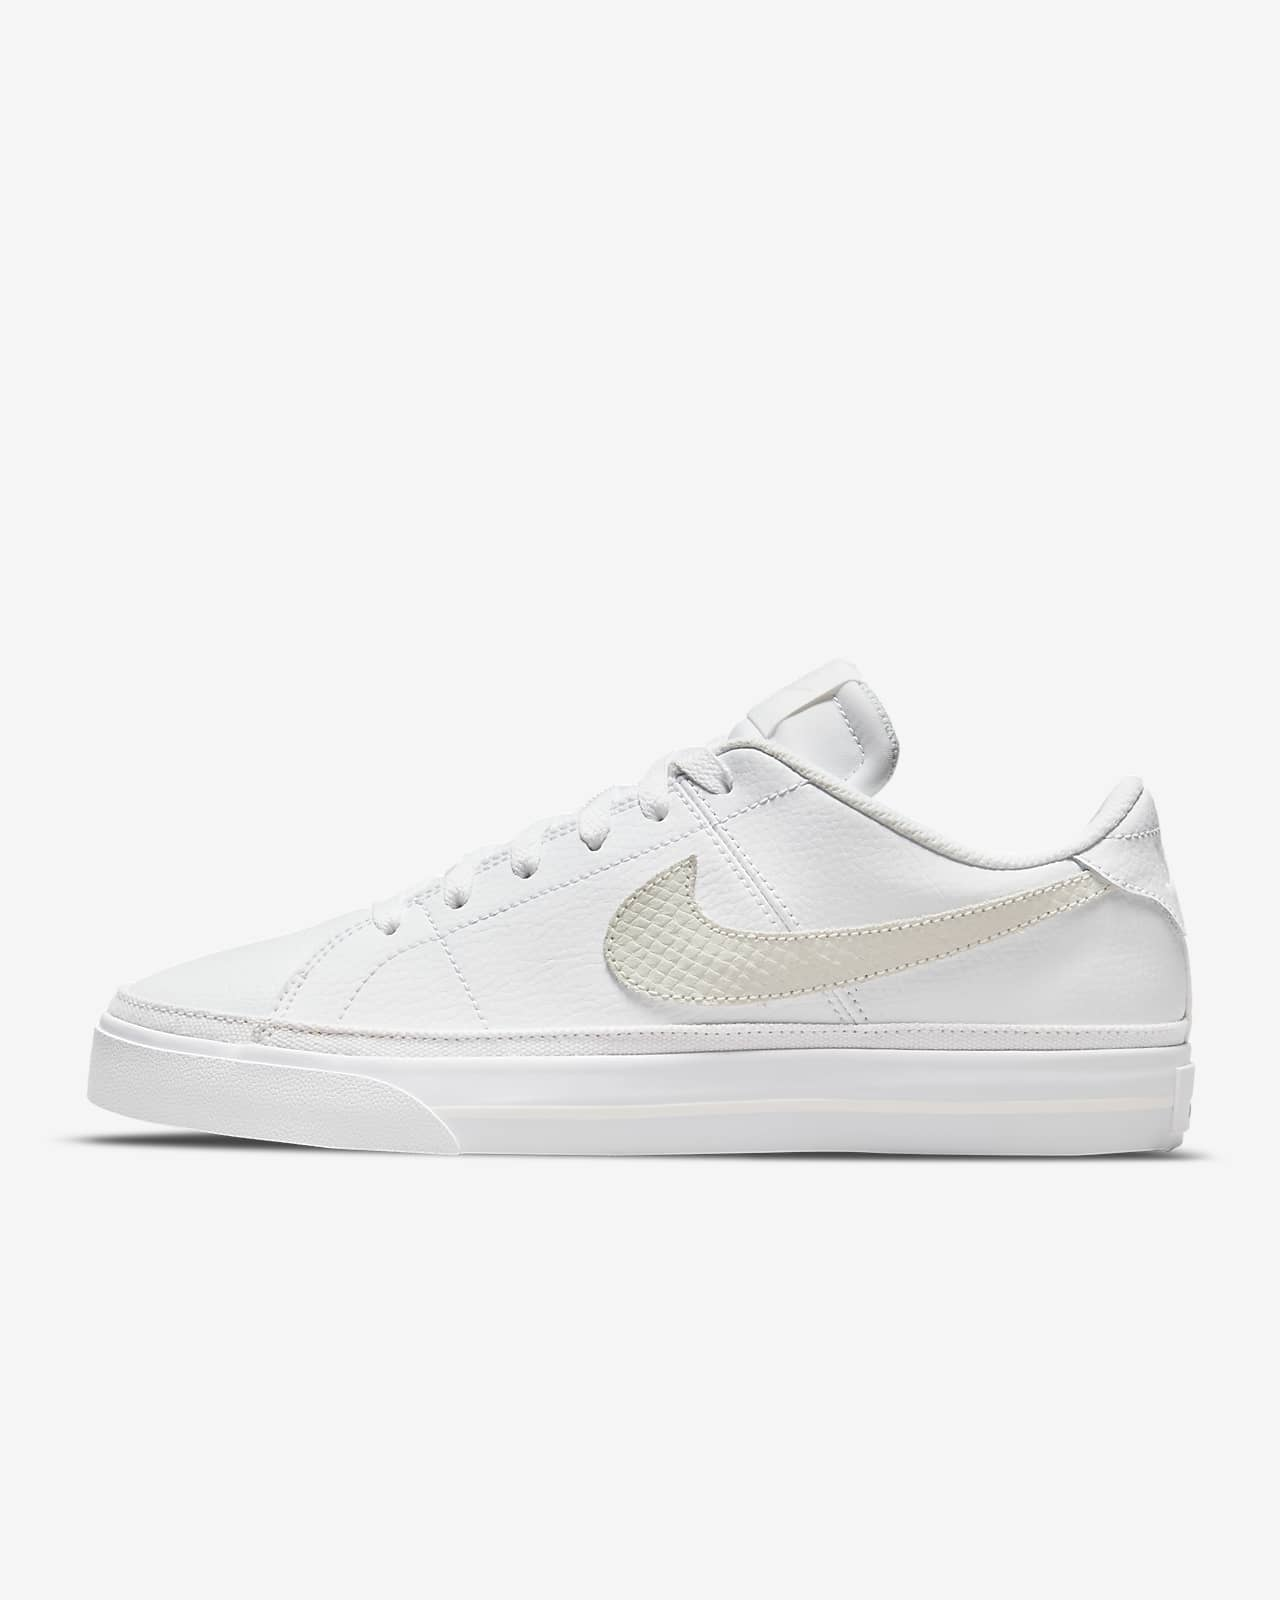 Chaussures Nike Court Legacy pour Femme